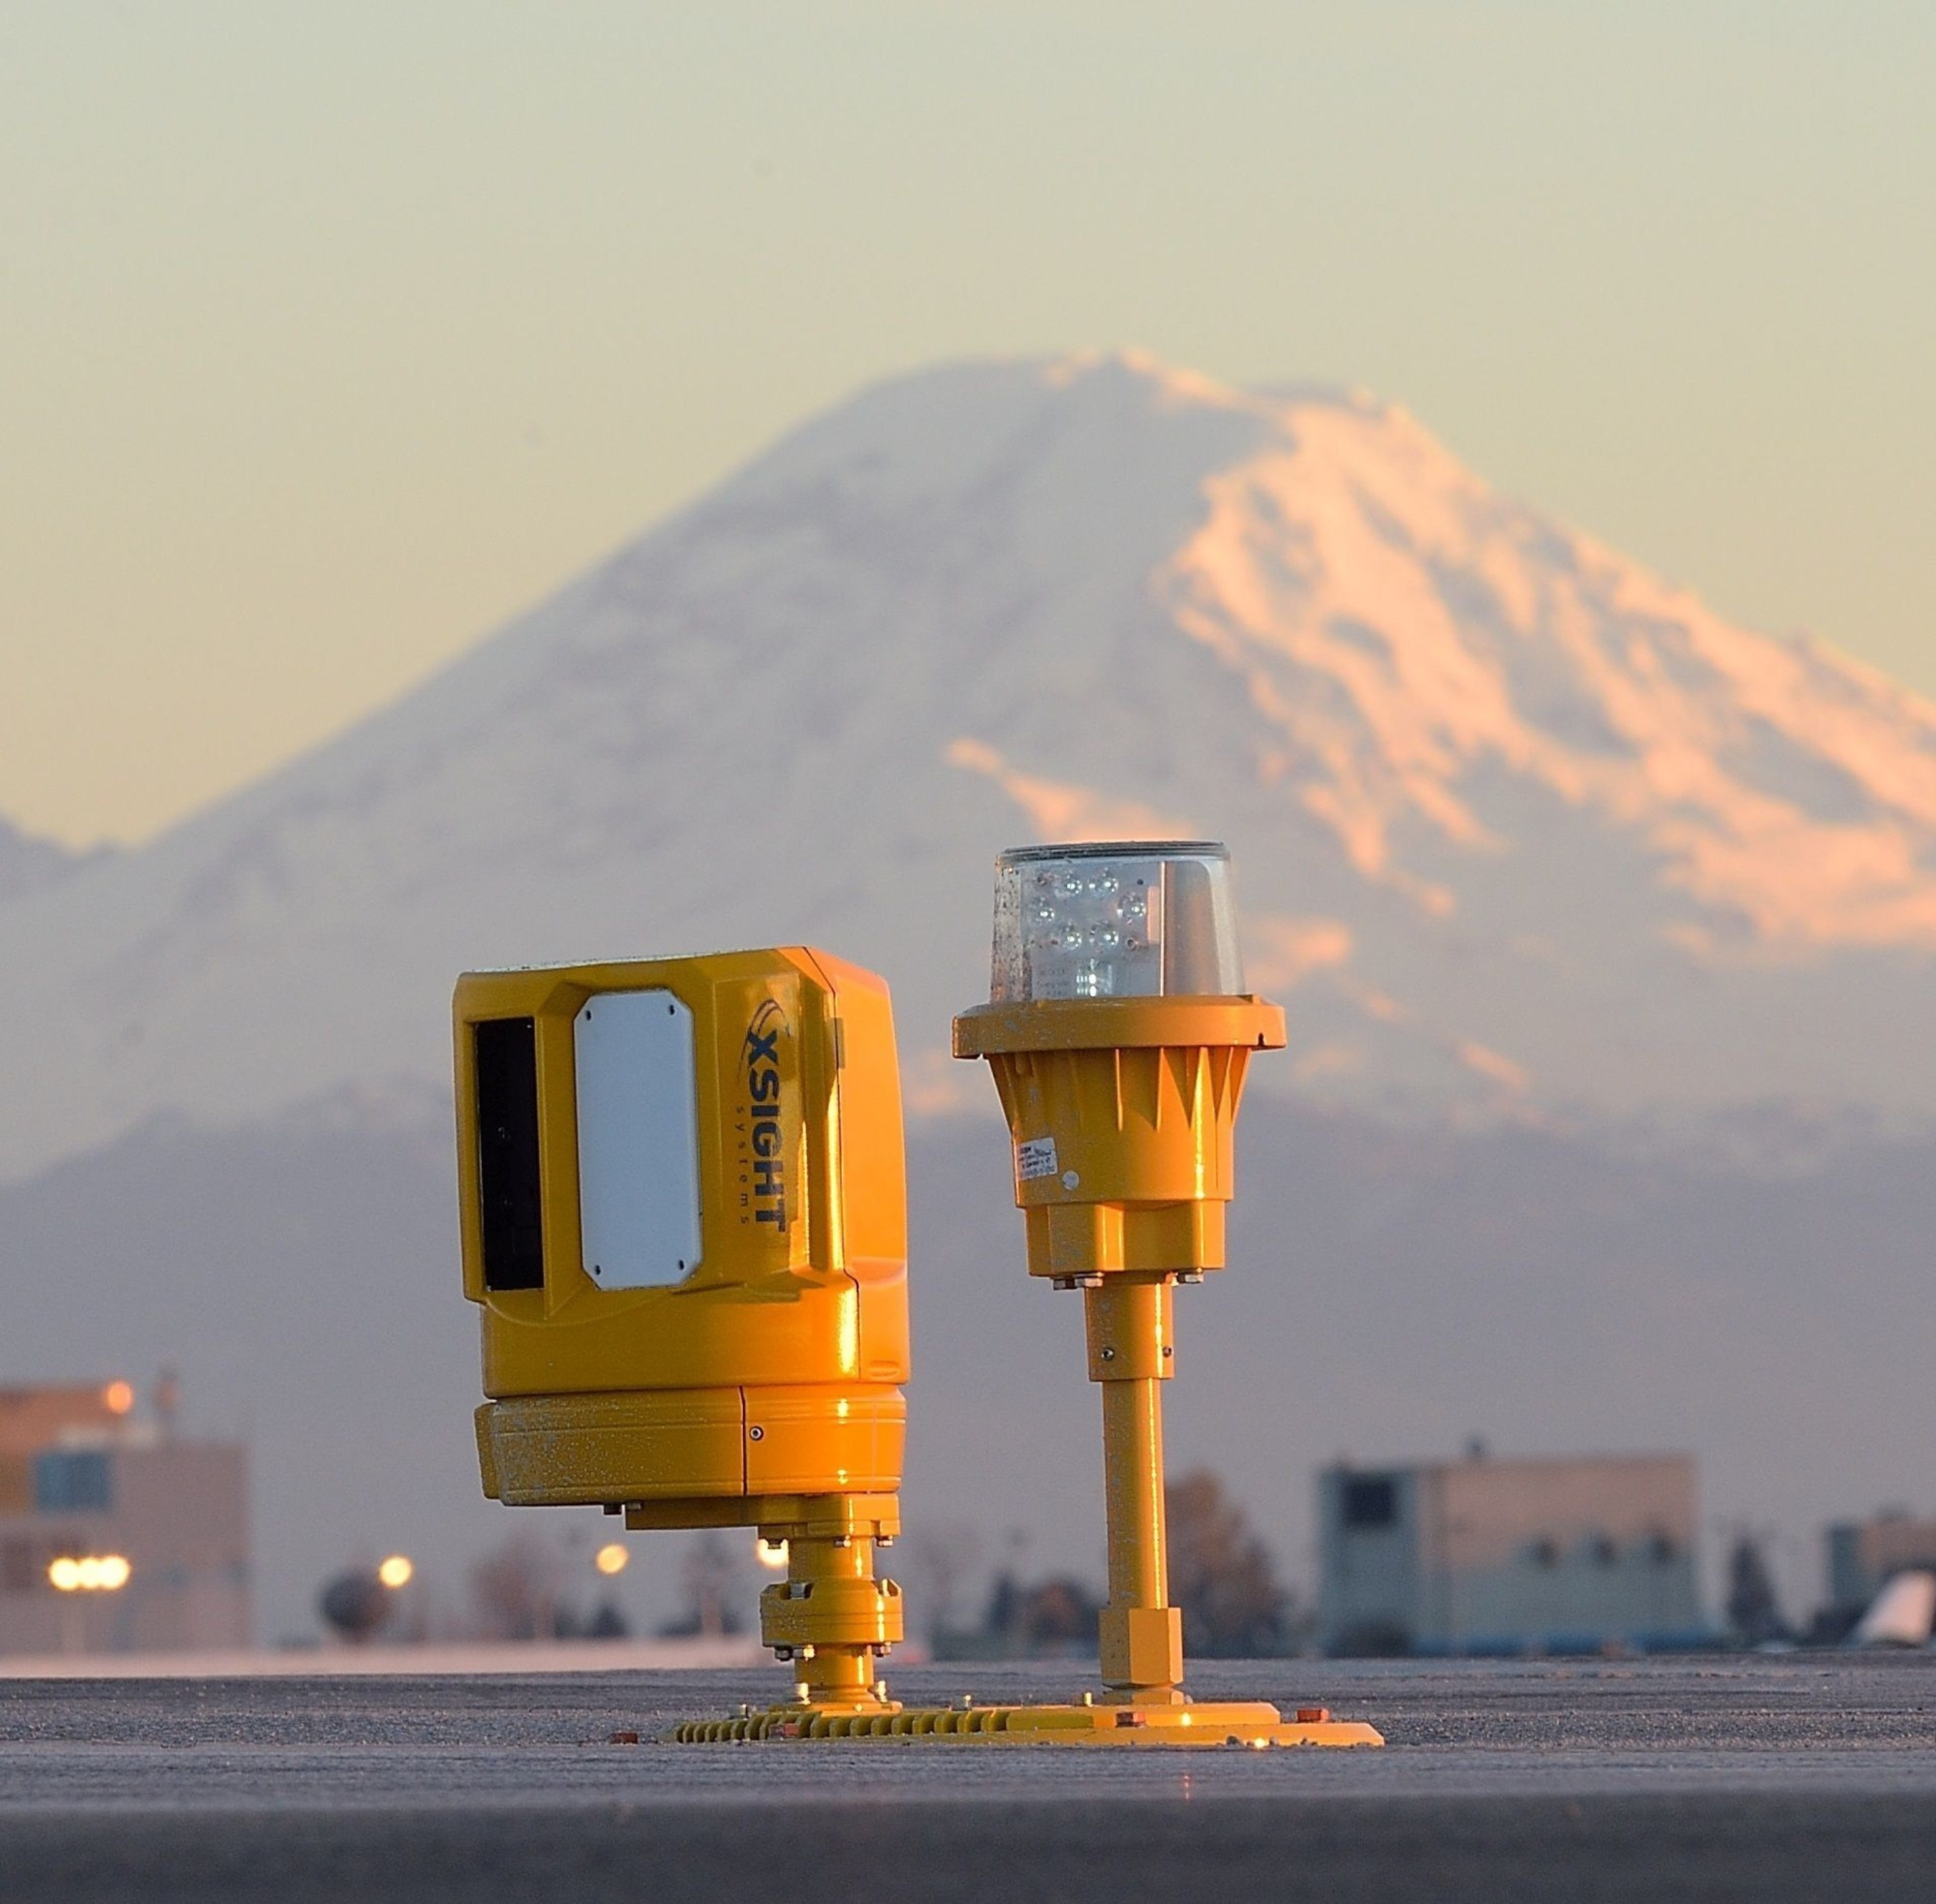 RunWize, the state-of-the-art runway management solution now deployed in Sea-Tac Airport, developed by Xsight Systems and integrated by prime contractor Leidos.